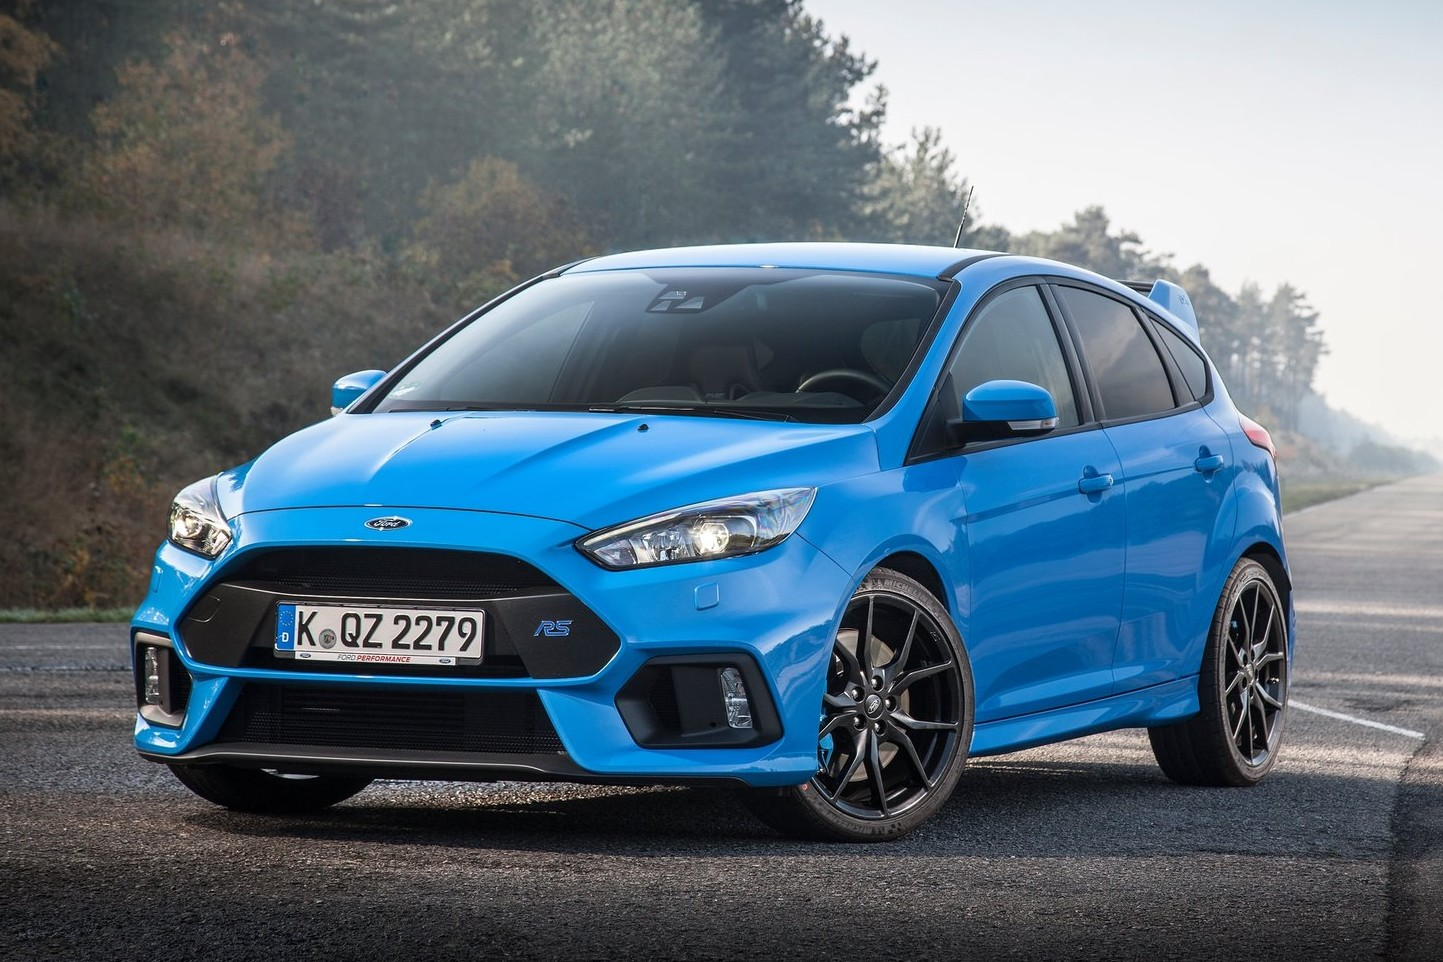 The exciting news from Ford is the Focus RS, an all-wheel drive version of the popular Focus hatchback that boasts around 350 hp from its turbocharged engine.